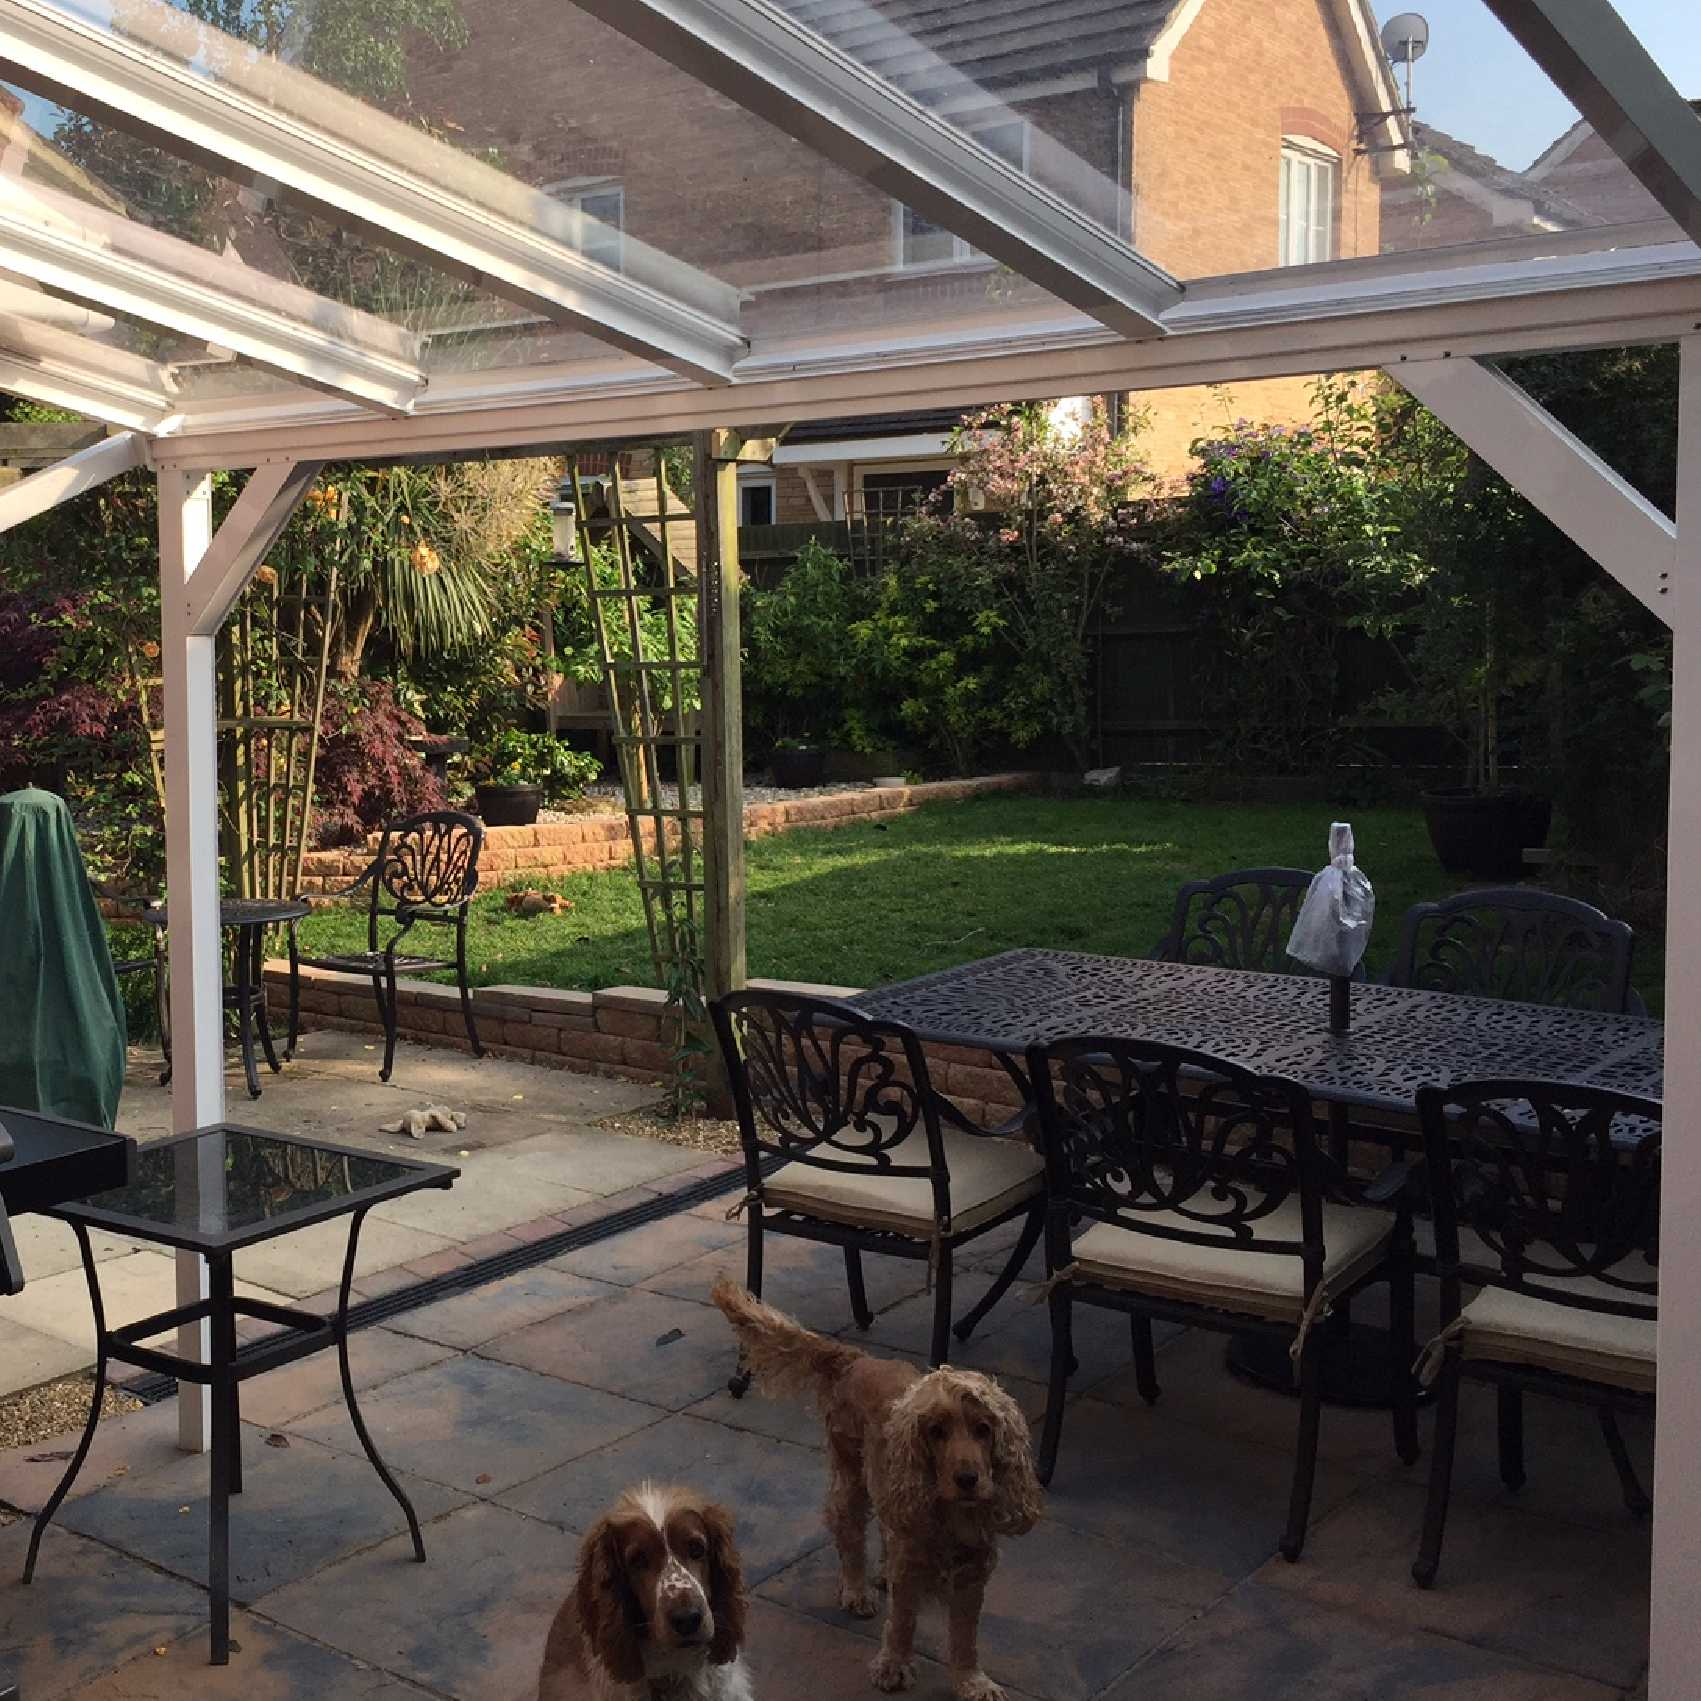 Affordable Omega Smart Lean-To Canopy with 6mm Glass Clear Plate Polycarbonate Glazing - 4.2m (W) x 4.0m (P), (3) Supporting Posts